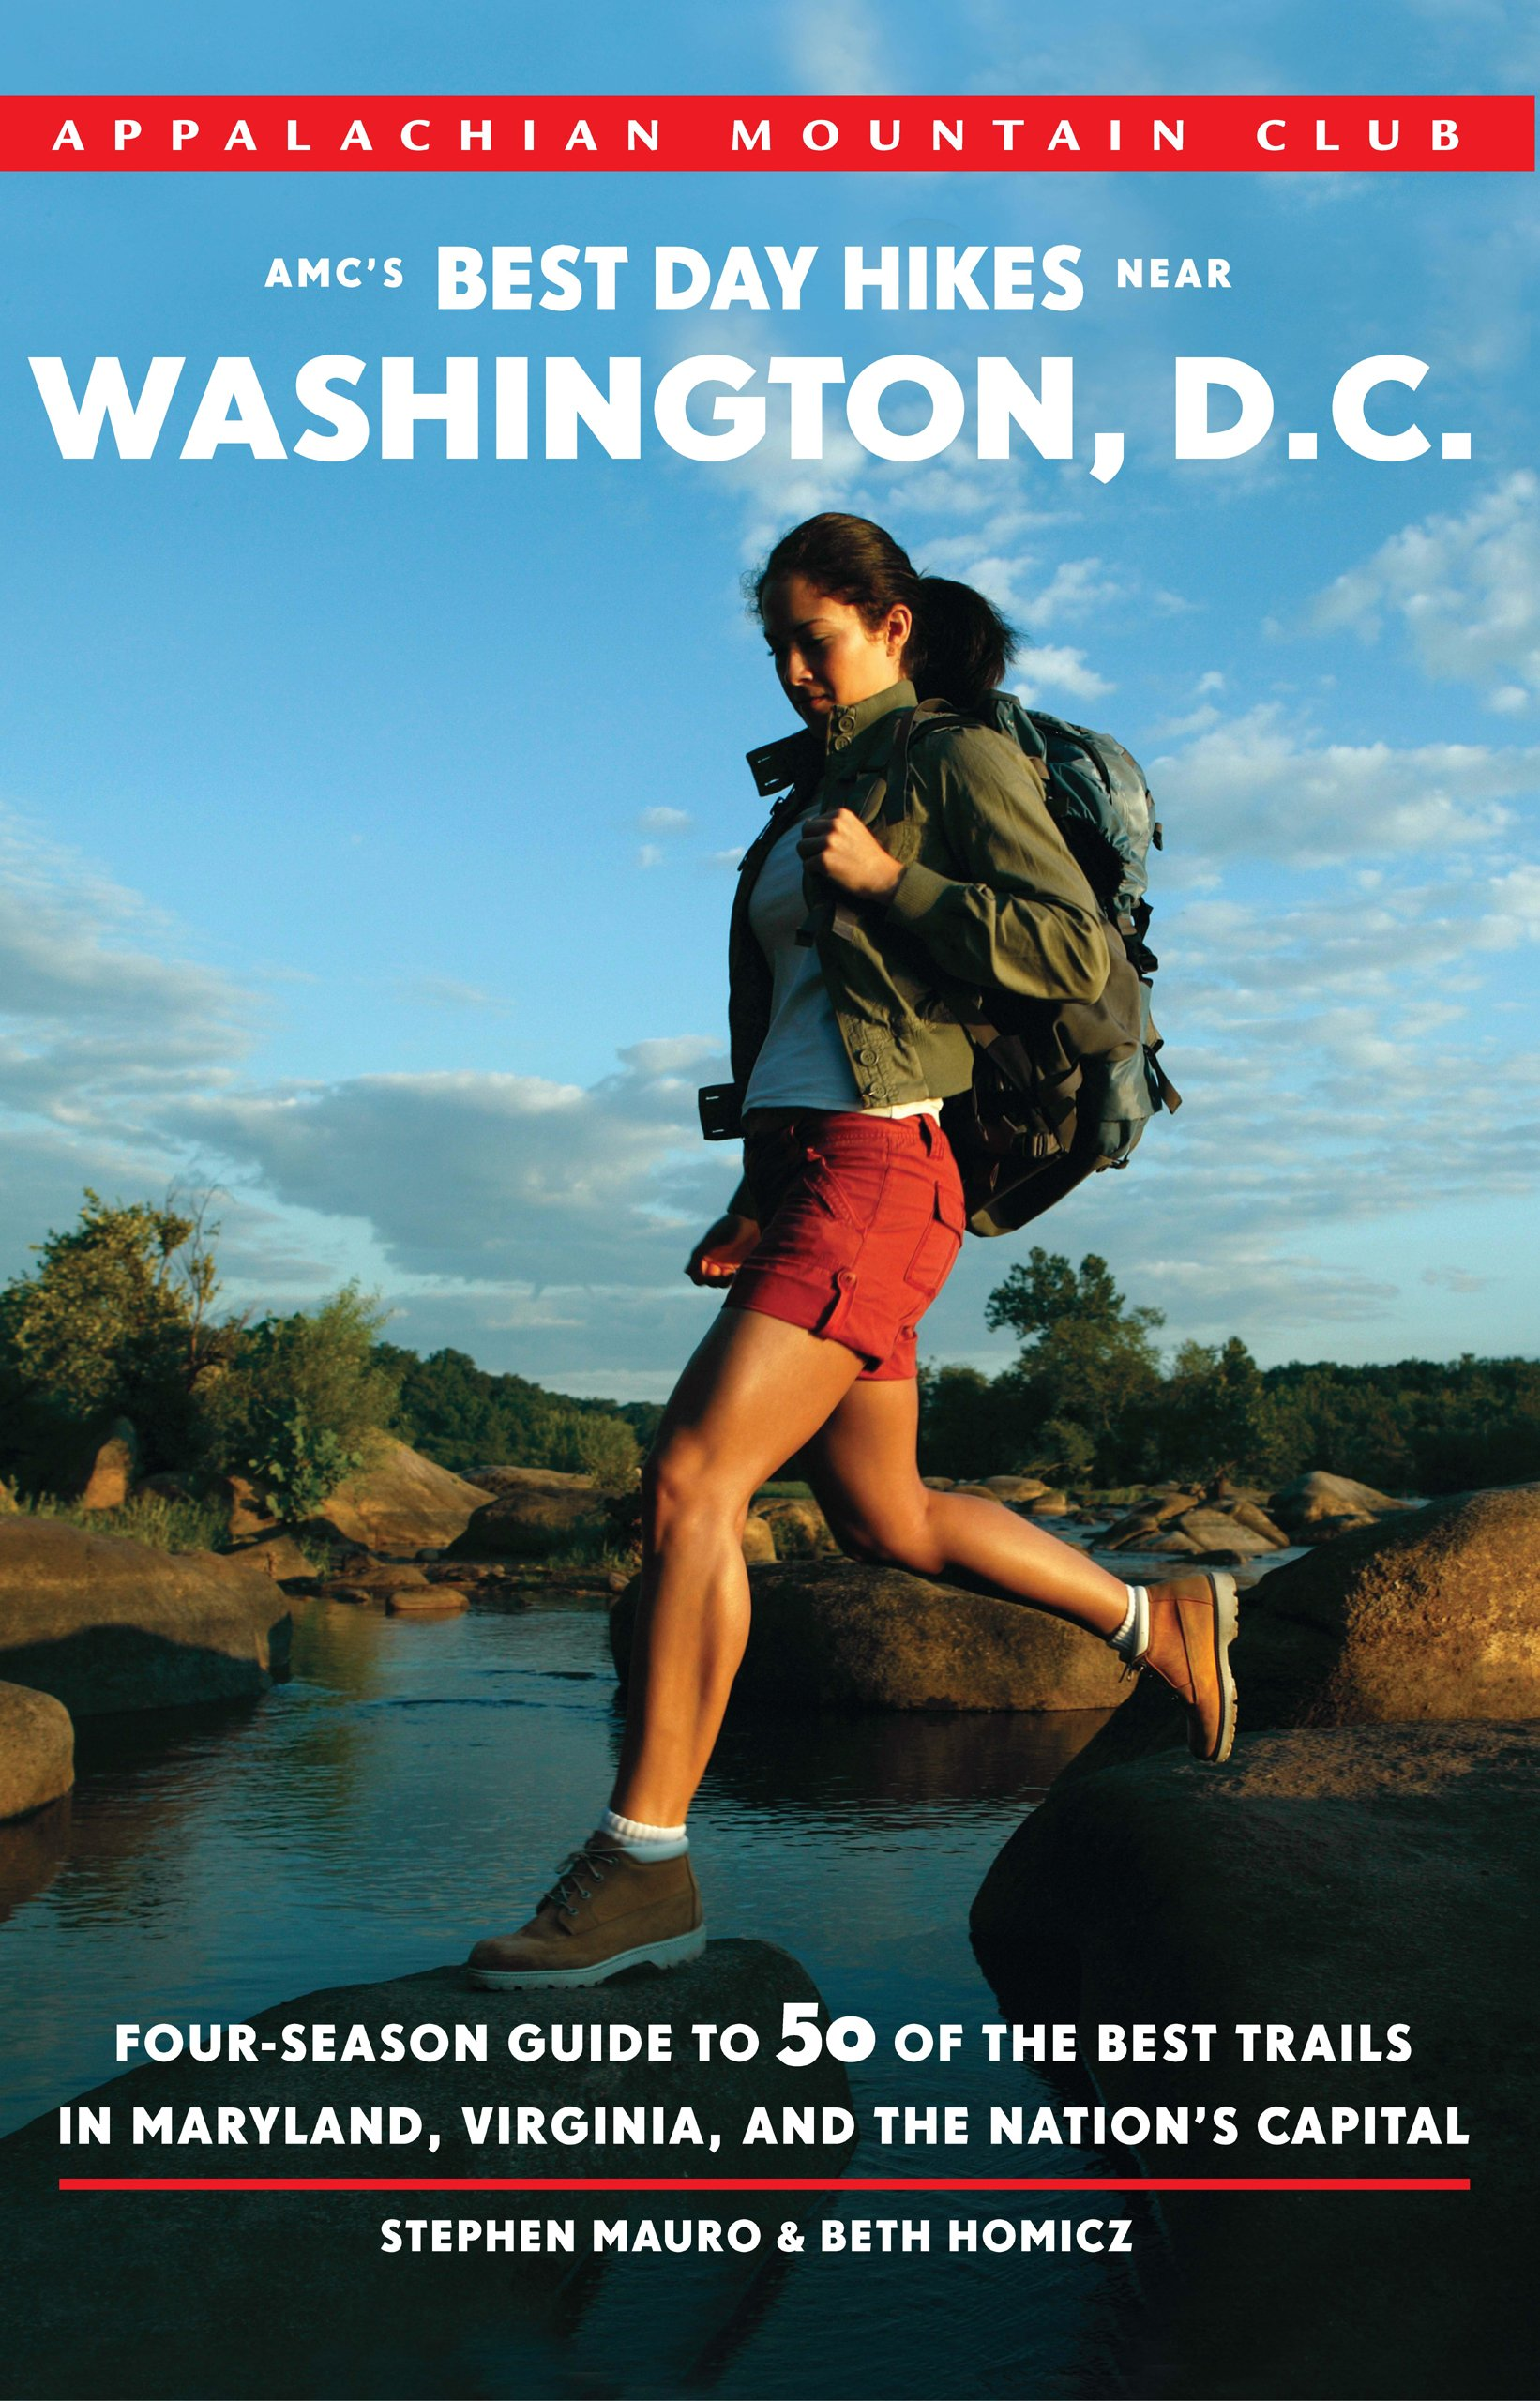 Download AMC's Best Day Hikes near Washington, D.C.: Four-season Guide to 50 of the Best Trails in Maryland, Virginia, and the Nation's Capital pdf epub